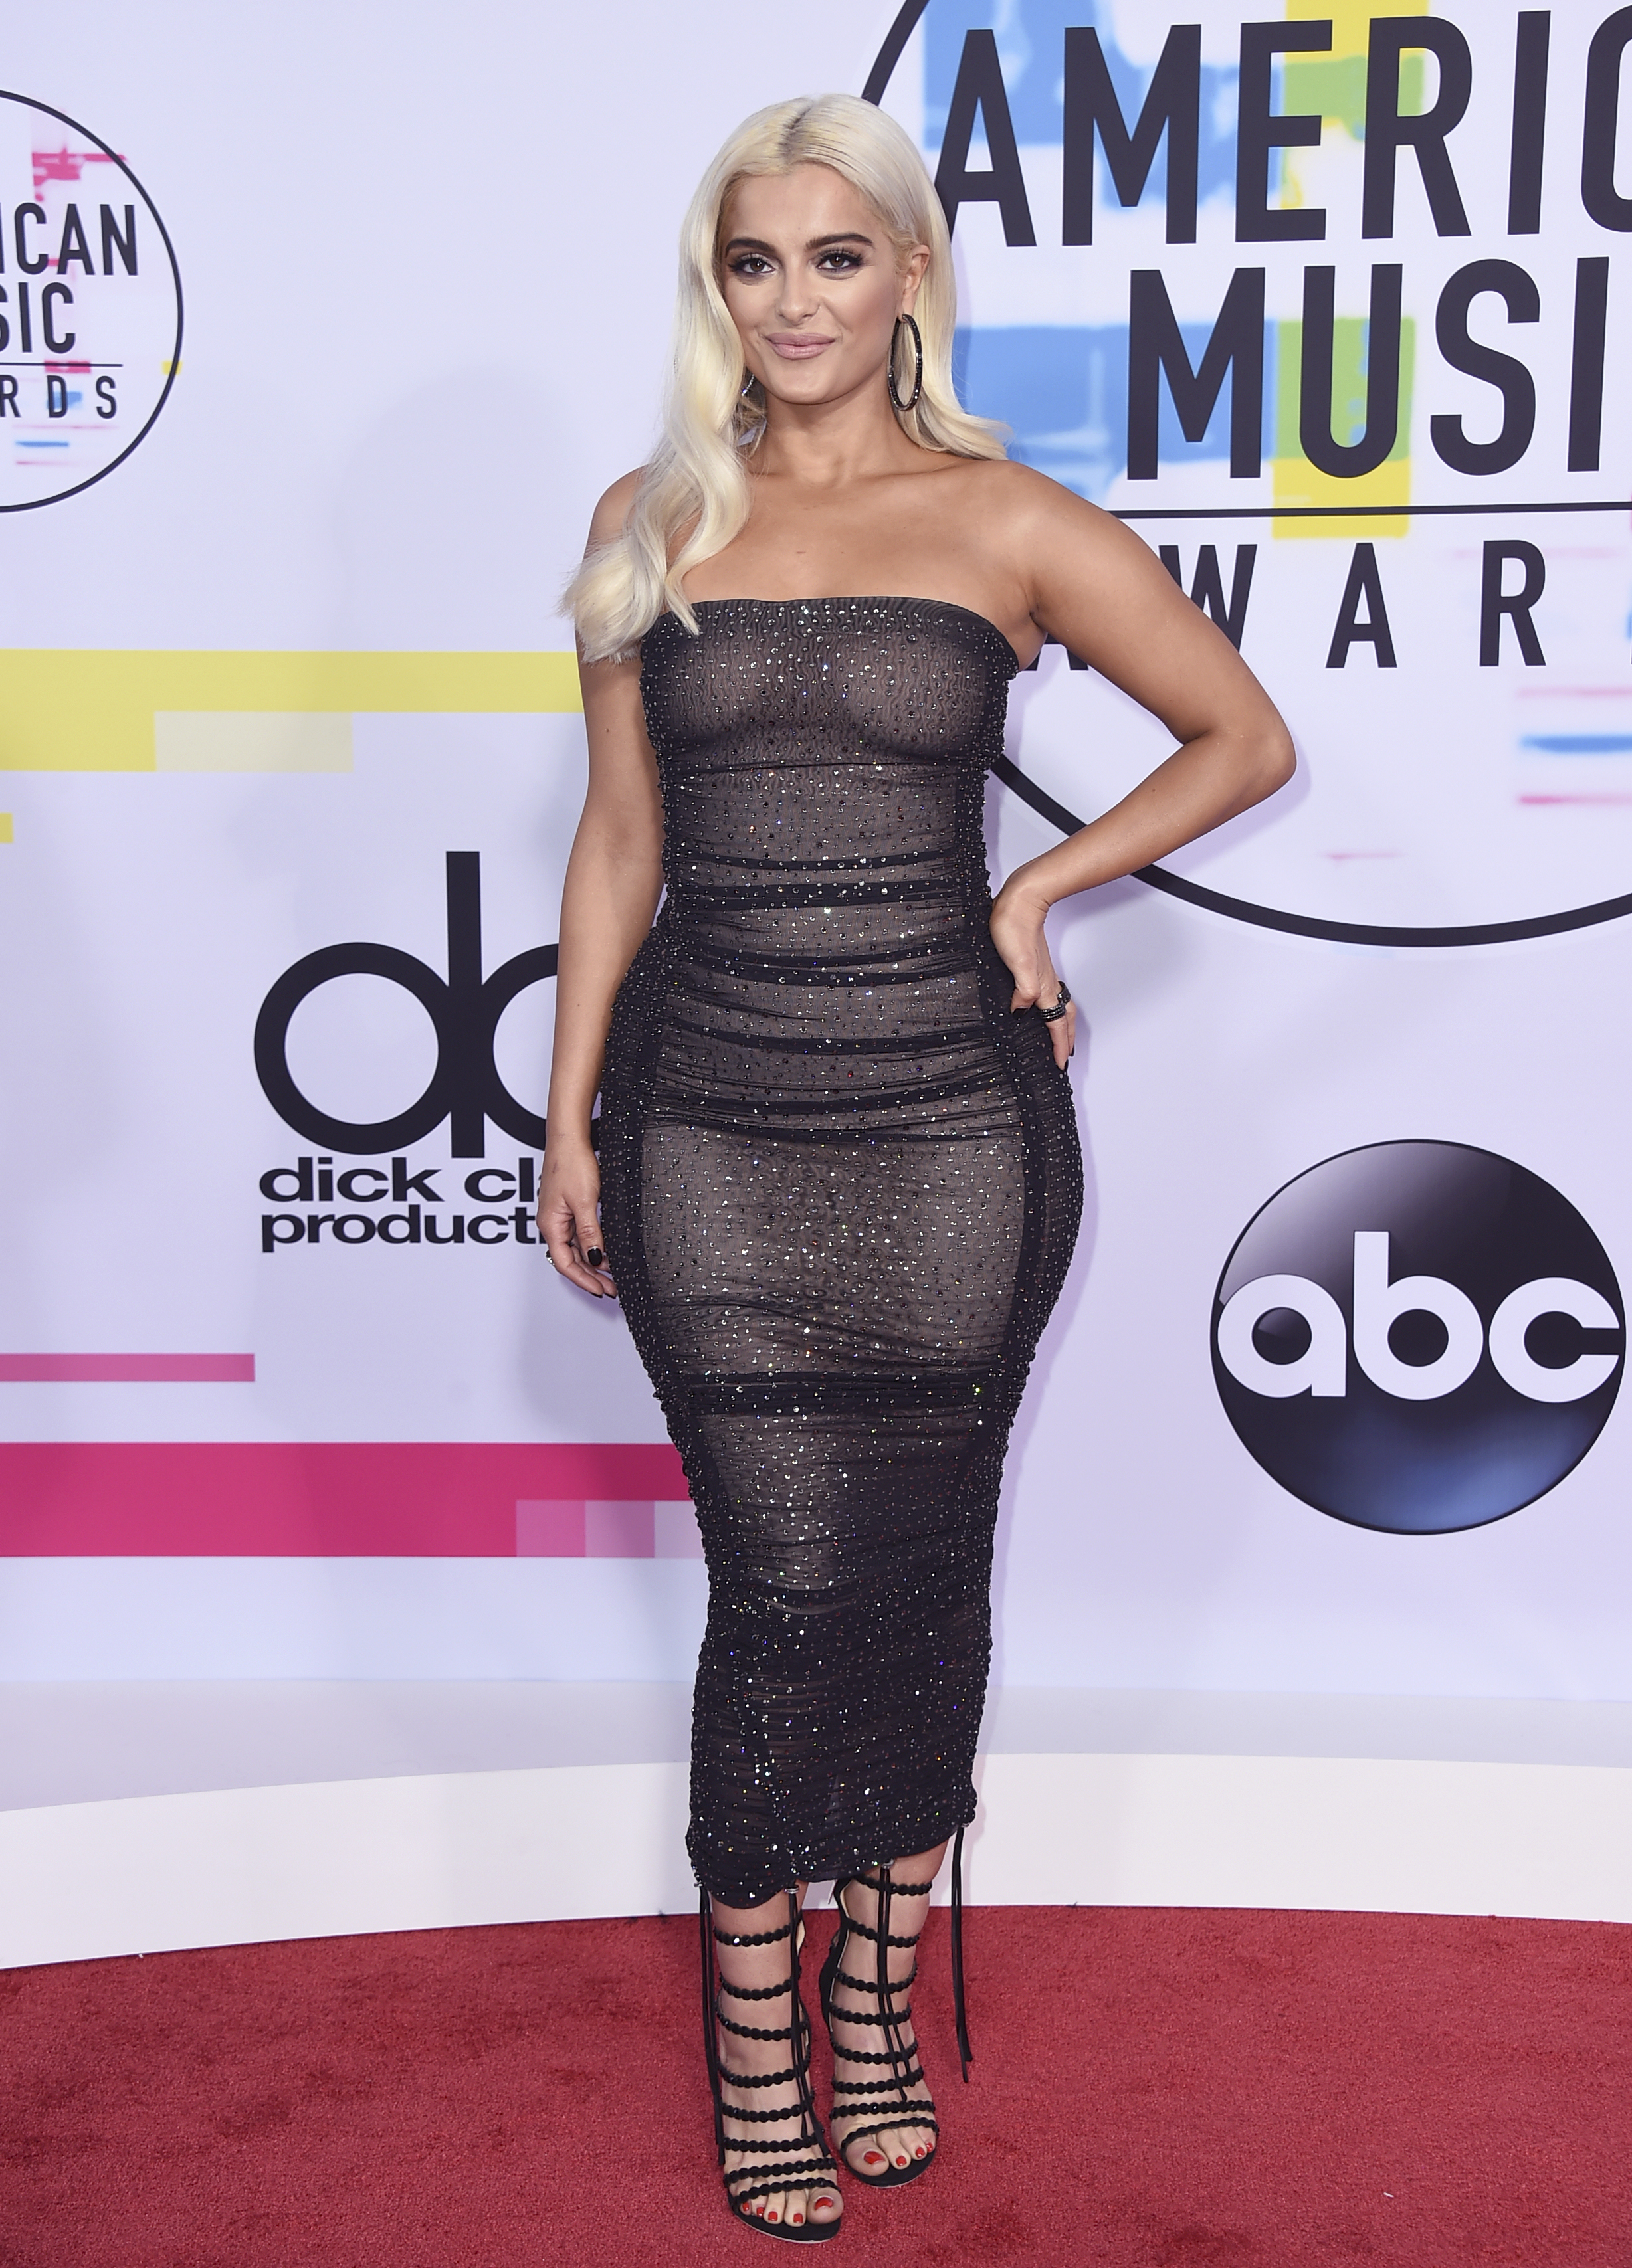 <div class='meta'><div class='origin-logo' data-origin='none'></div><span class='caption-text' data-credit='Jordan Strauss/Invision/AP'>Bebe Rexha arrives at the American Music Awards at the Microsoft Theater on Sunday, Nov. 19, 2017, in Los Angeles.</span></div>